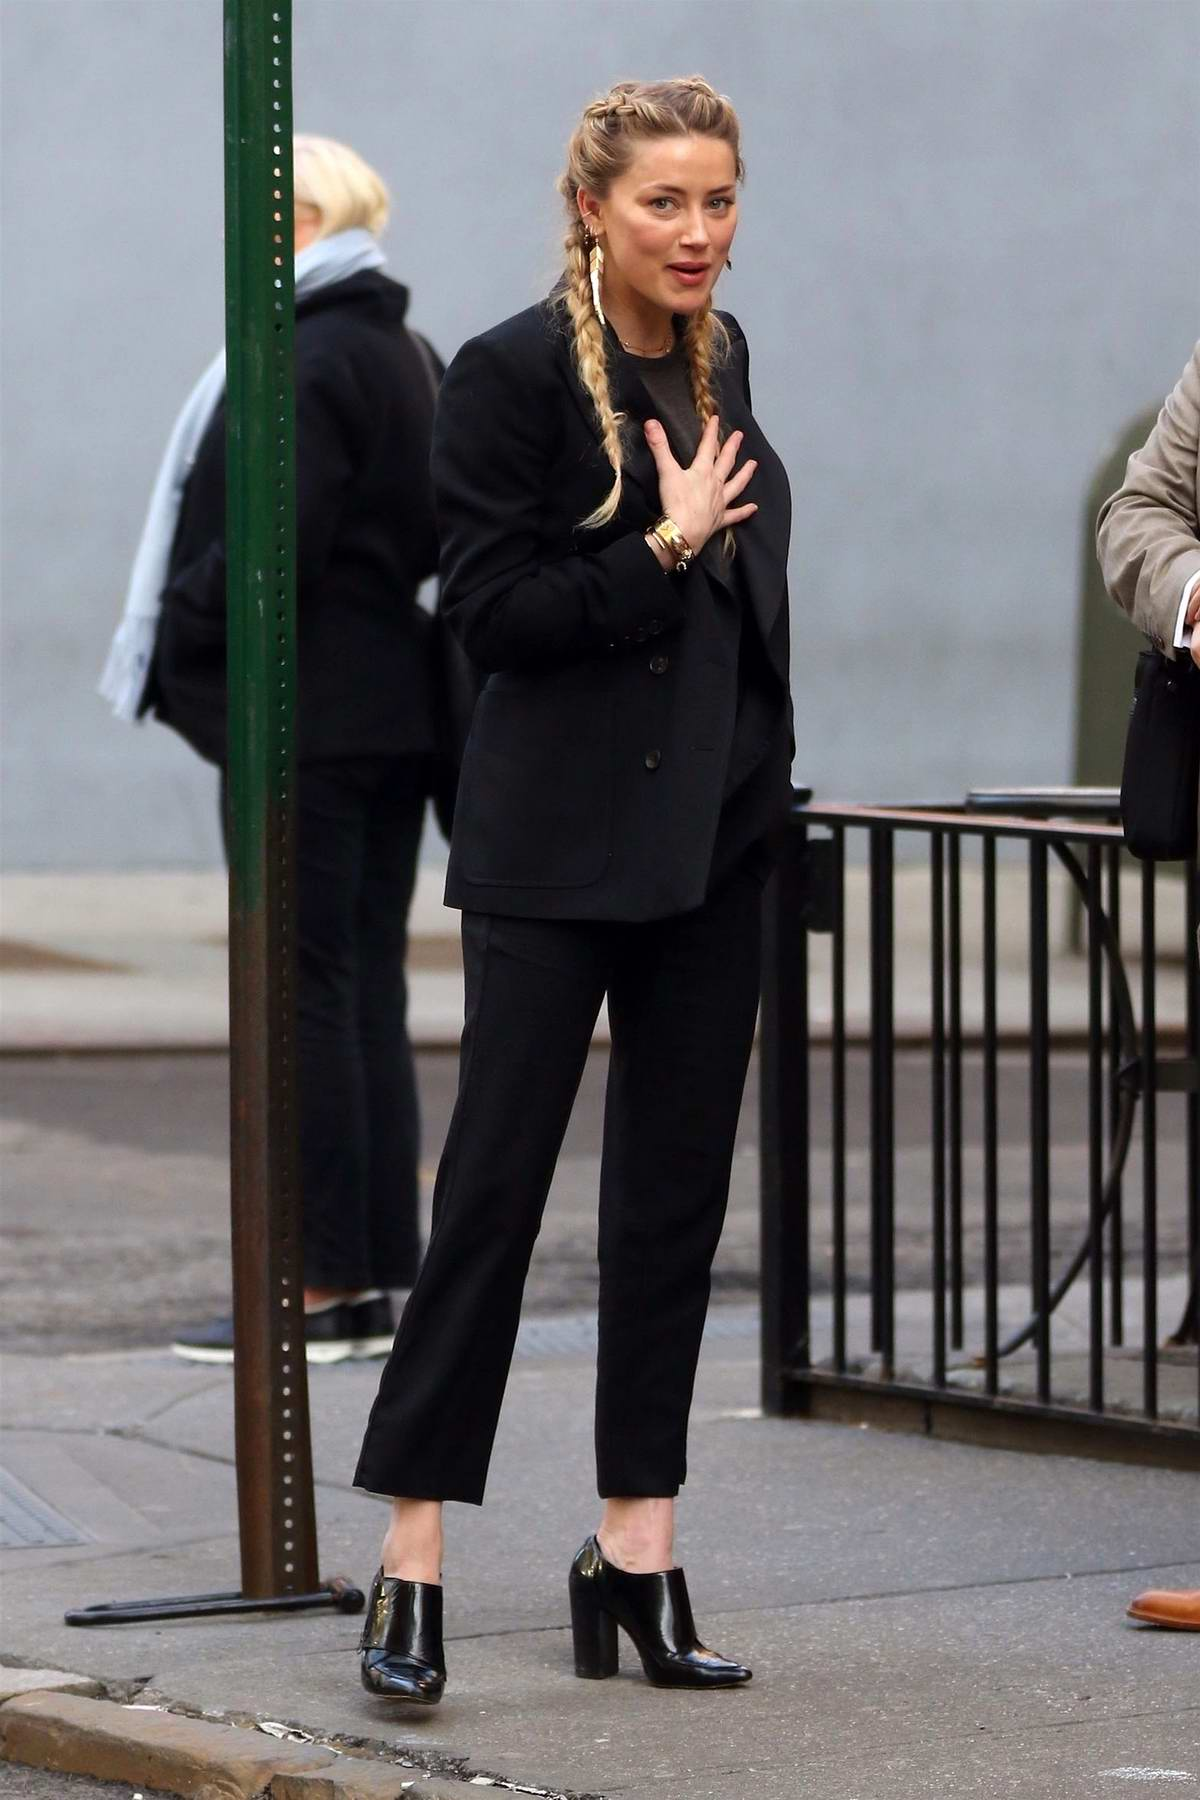 Amber Heard looks stylish in a black suit and YSL purse while out for a business meeting at Sant Ambroeus in New York City